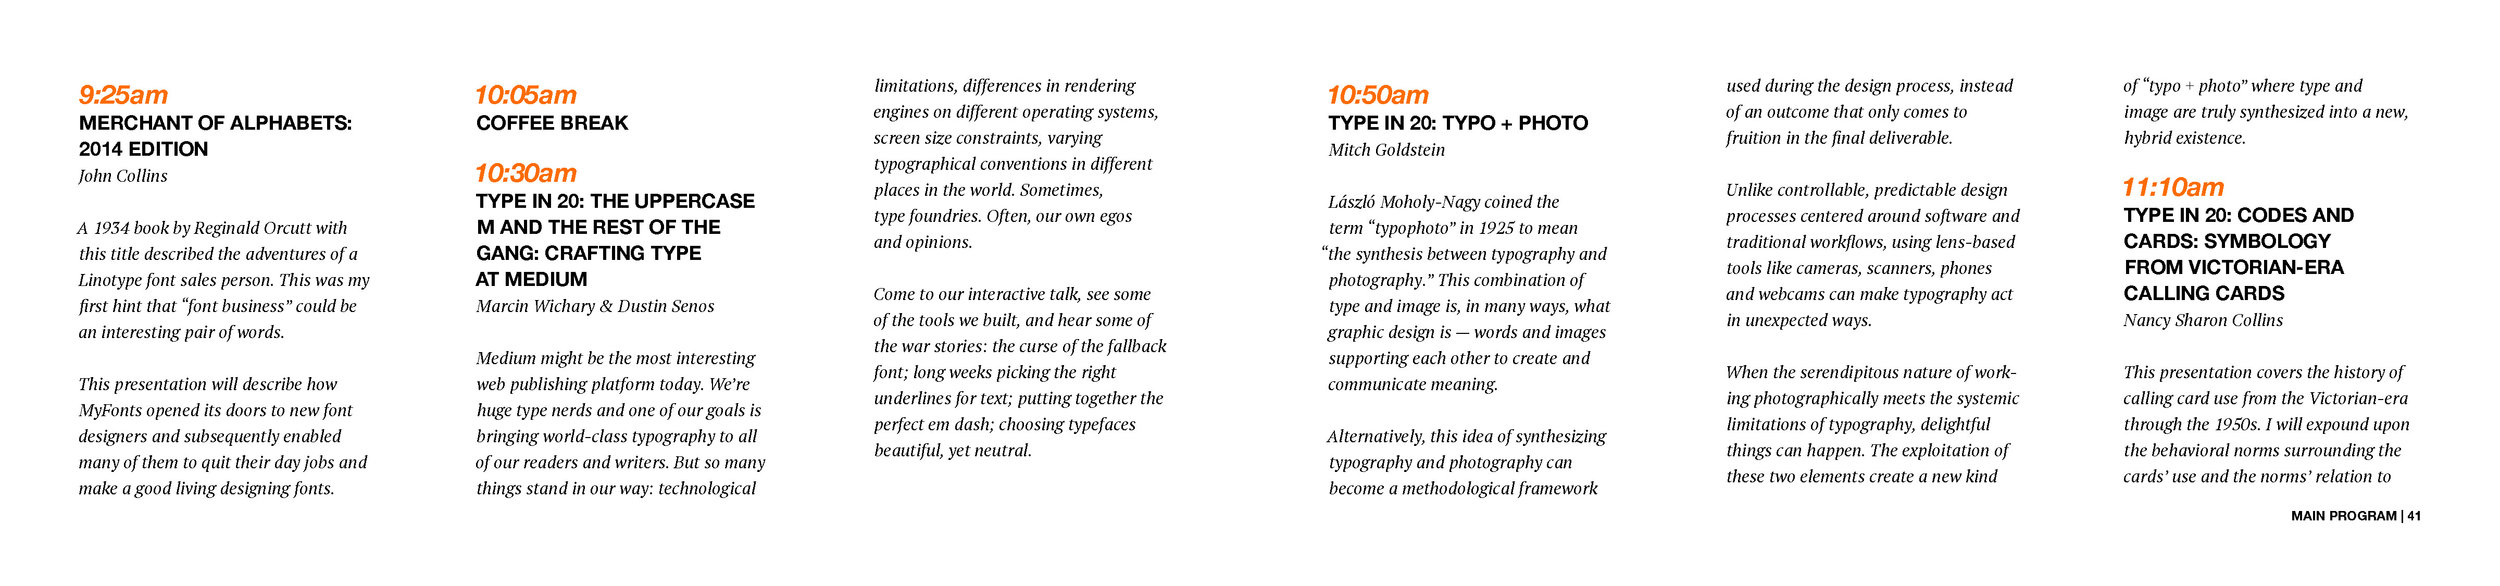 typecon_book_NEW_Page_21.jpg